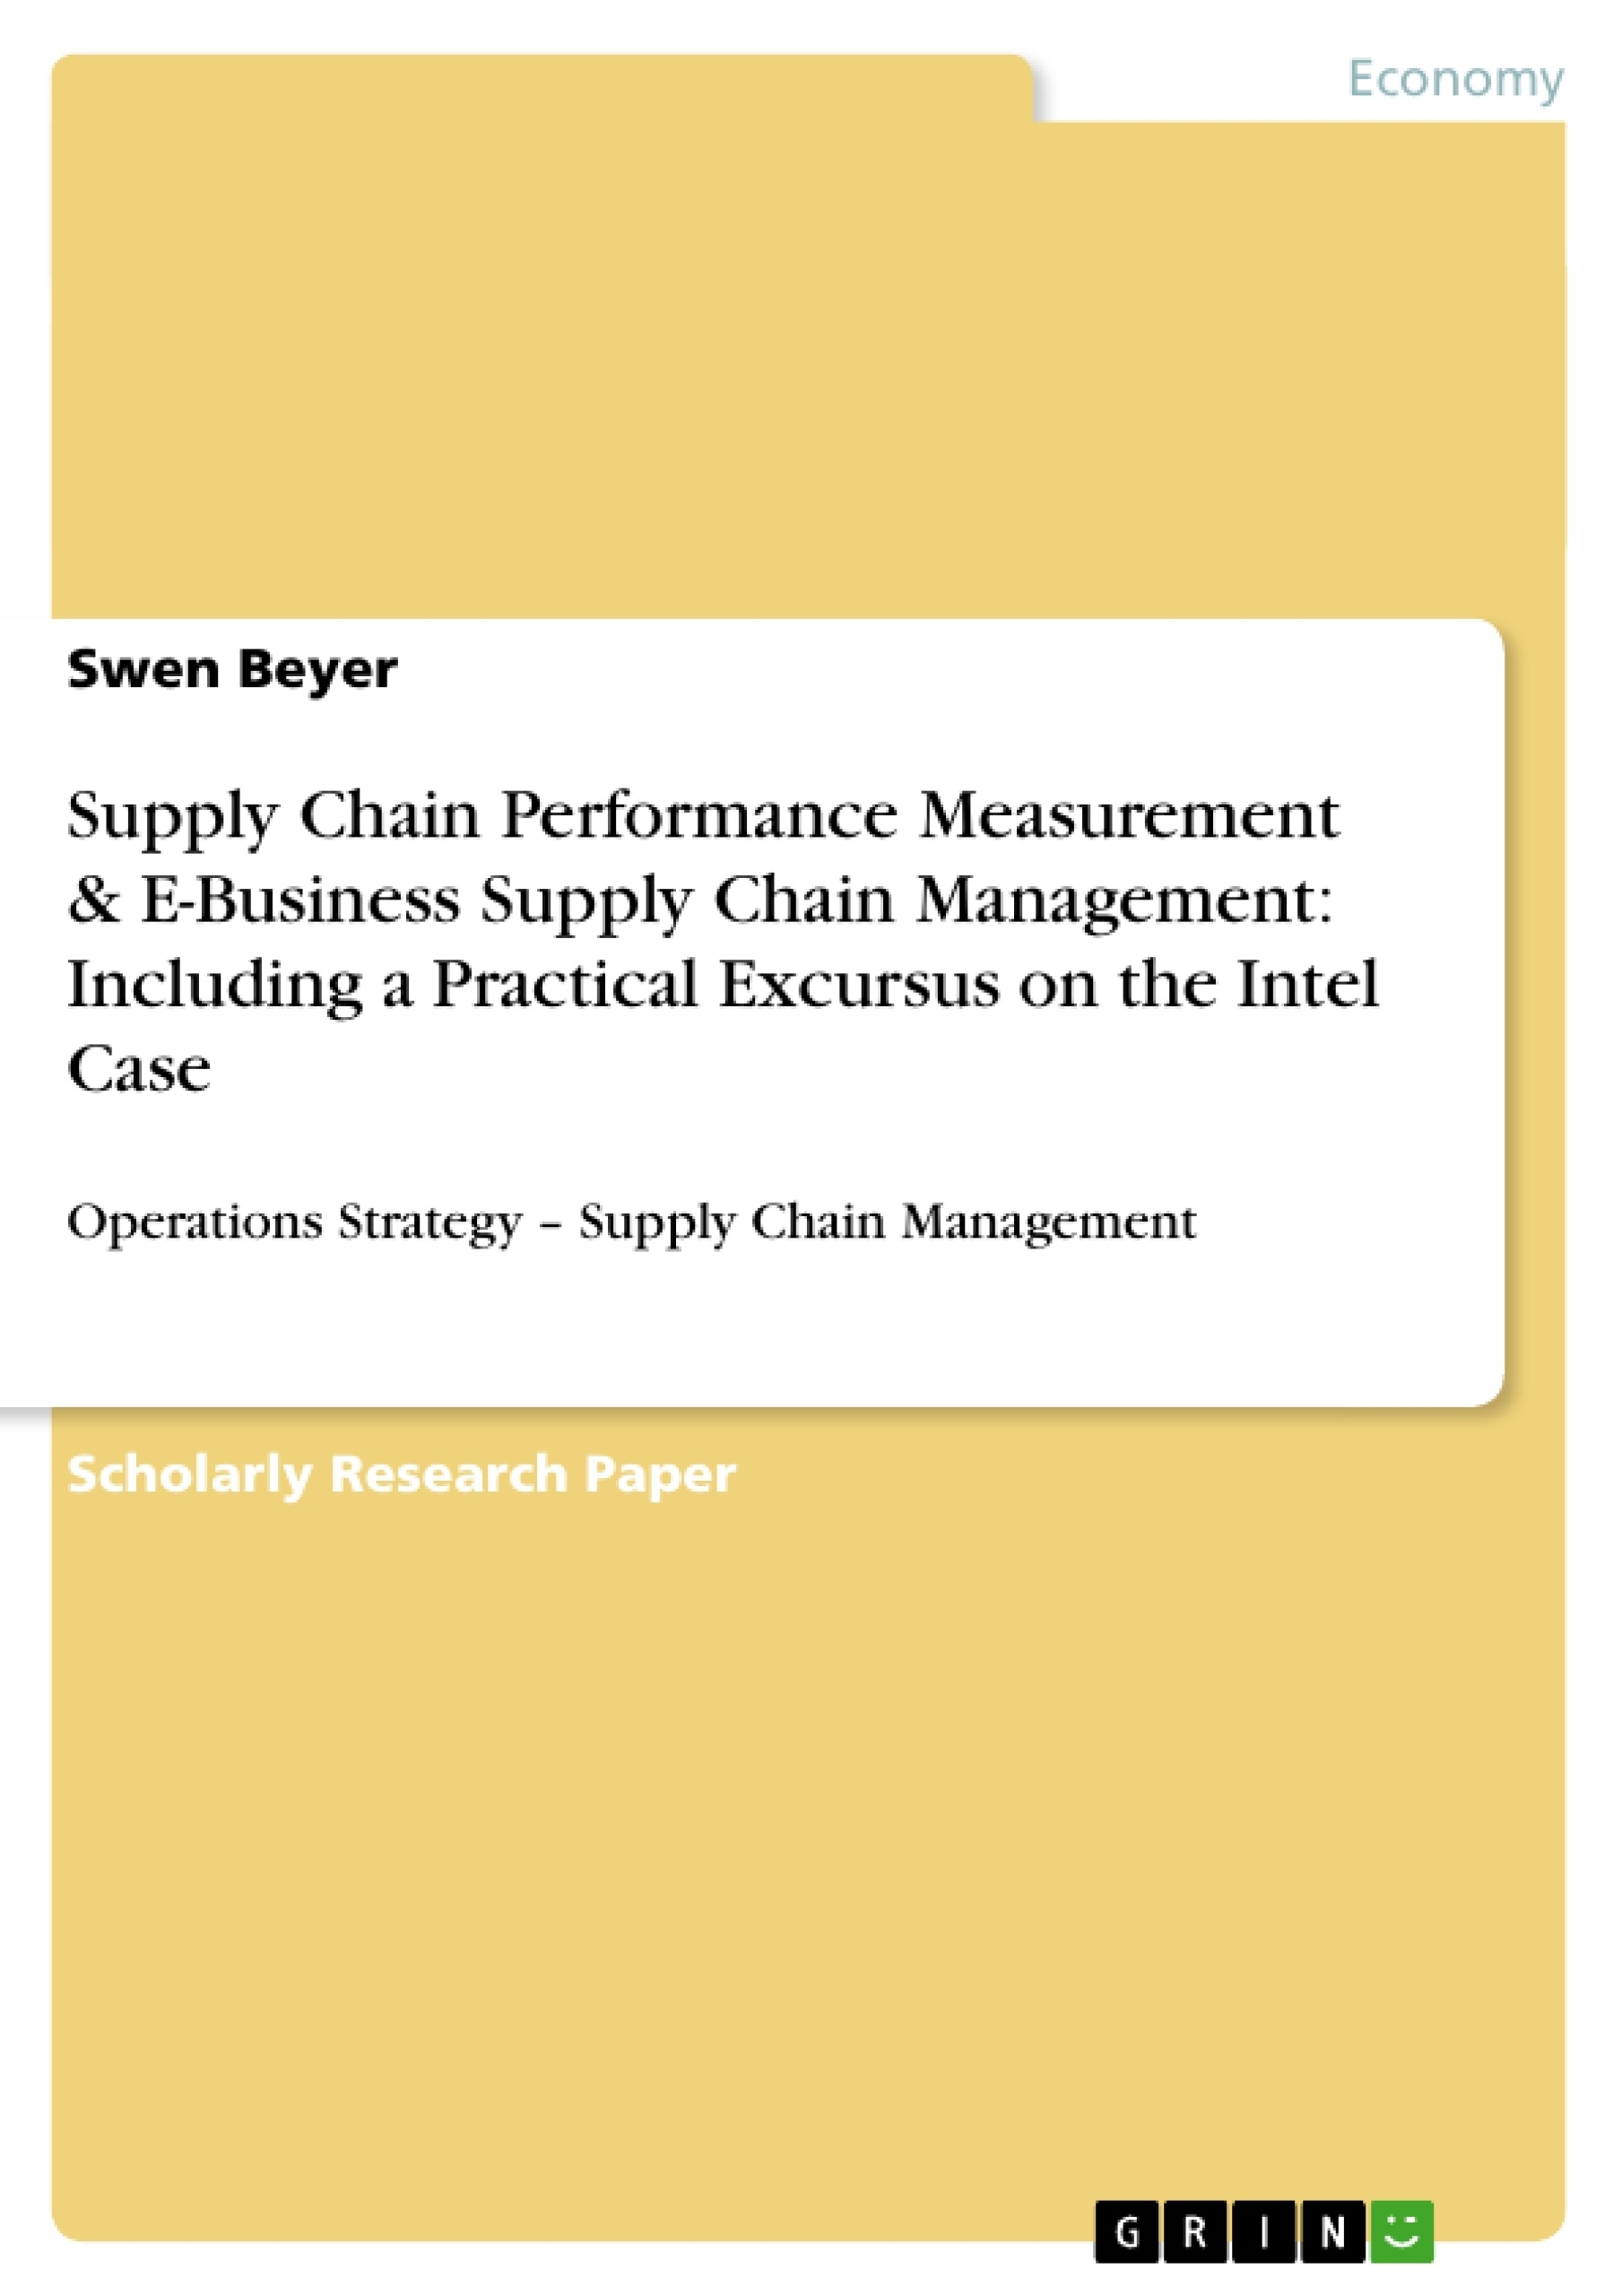 Title: Supply Chain Performance Measurement & E-Business Supply Chain Management: Including a  Practical Excursus on the Intel Case